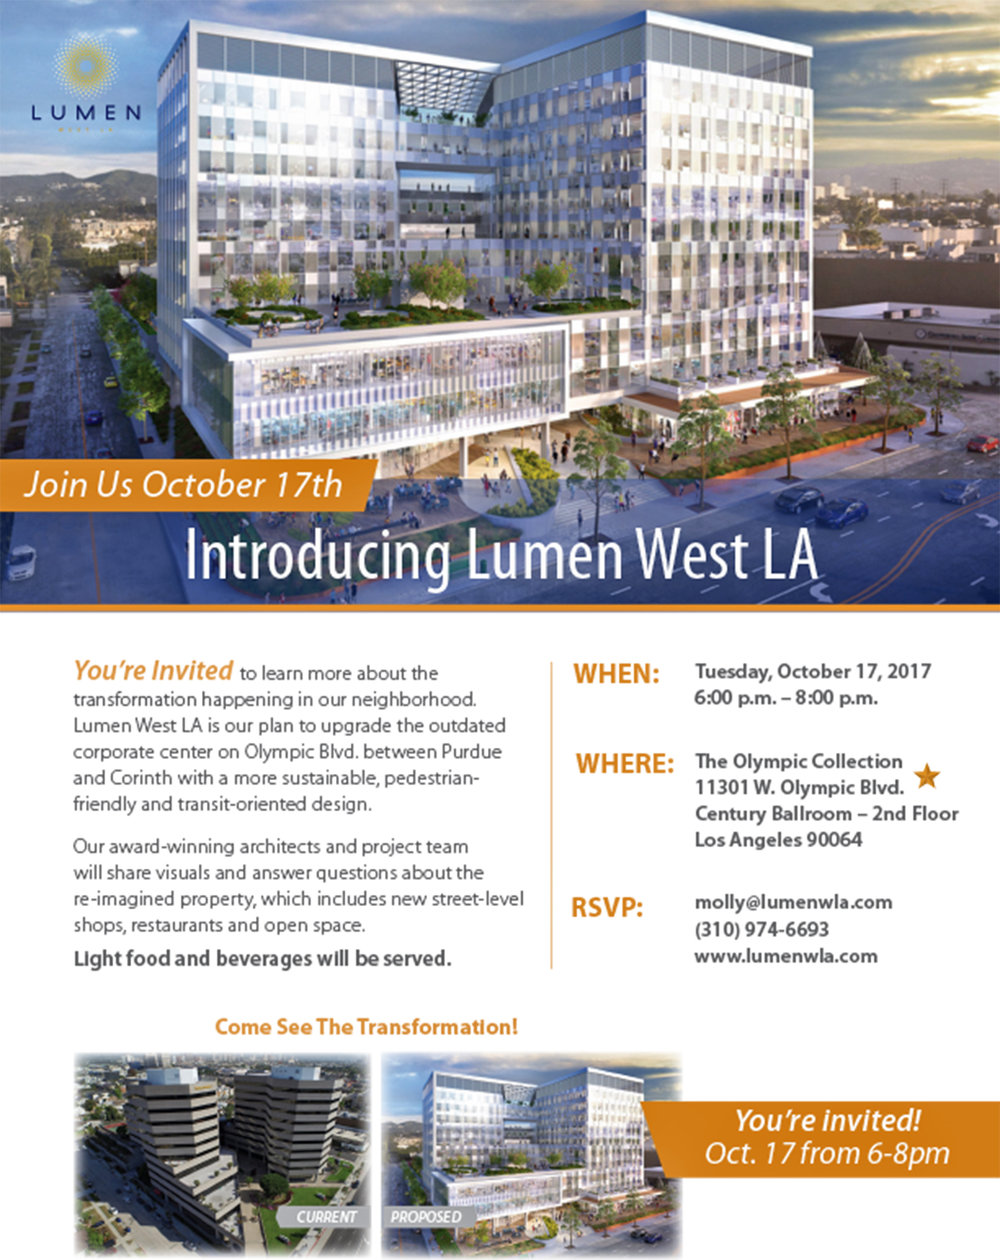 Lumen+West+LA+Invitation+(1).jpg